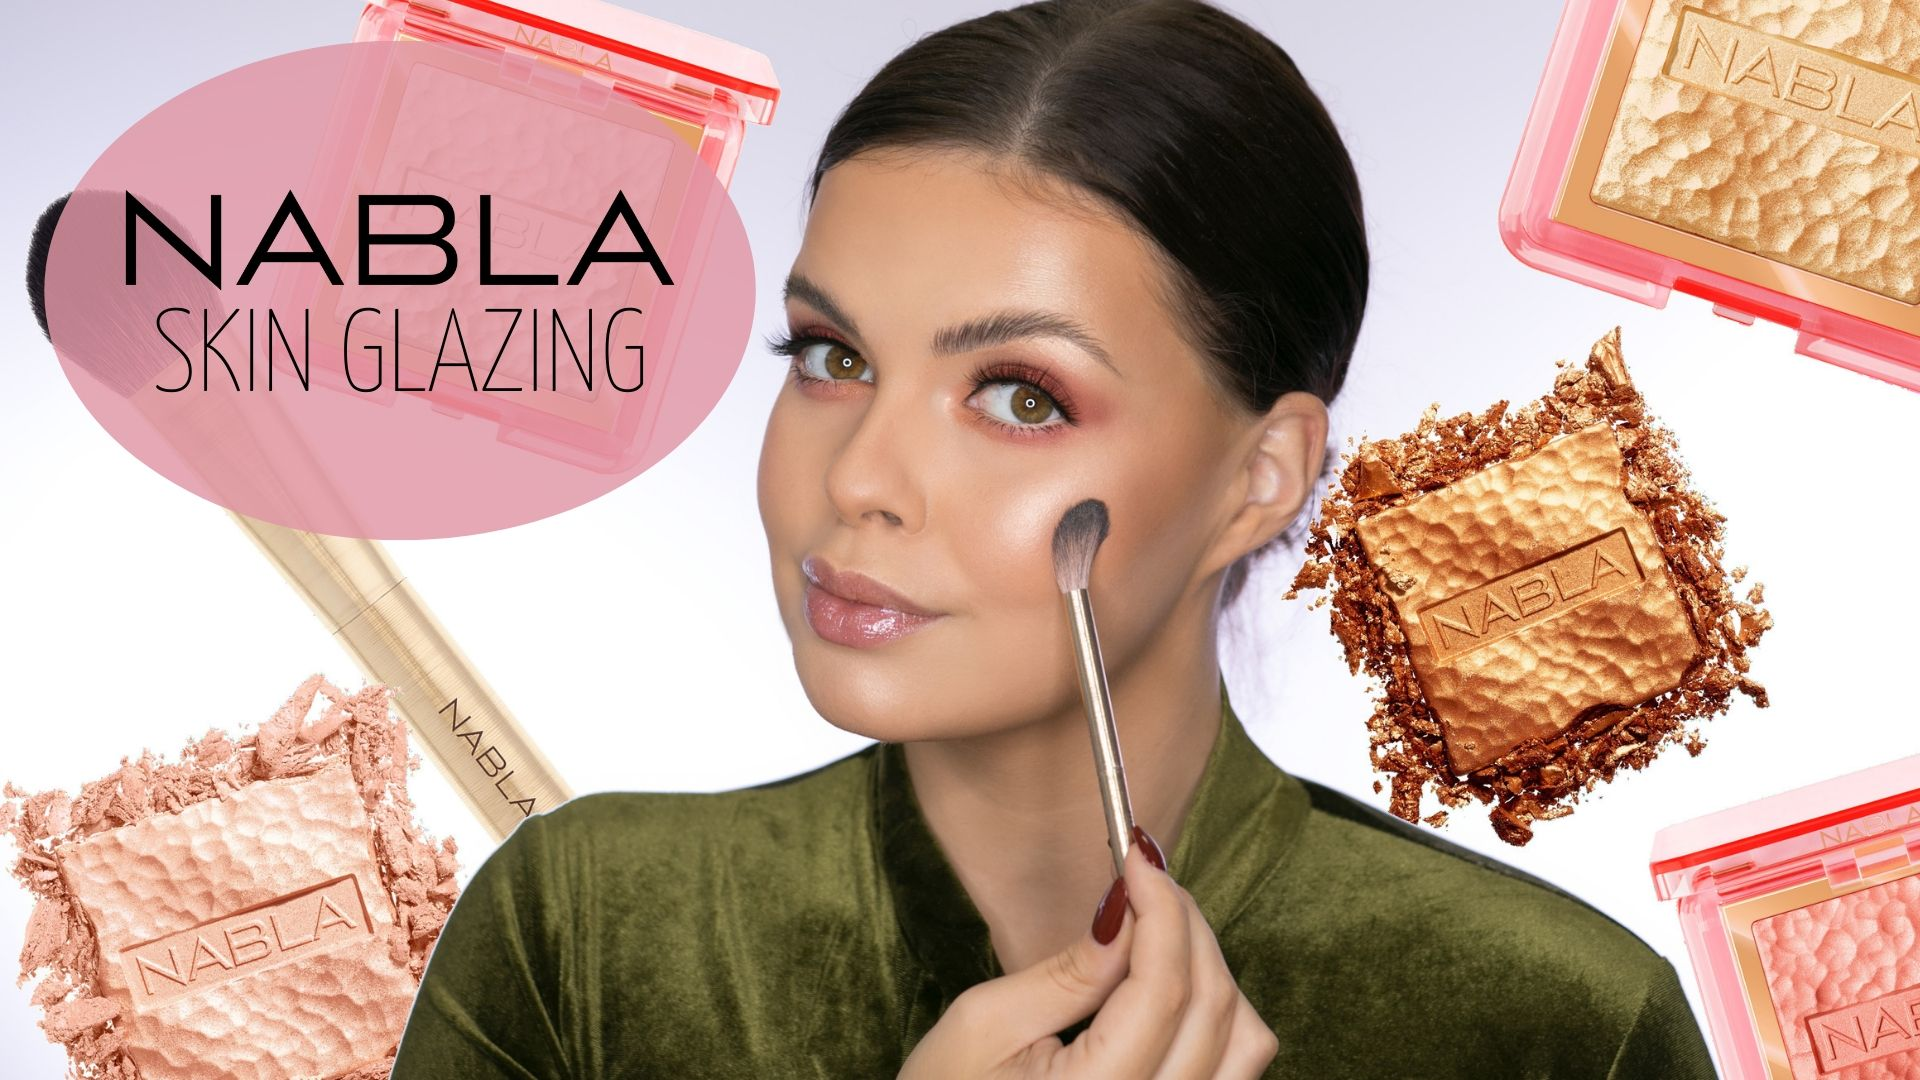 NOVINKA Nabla Skin Glazing Collection